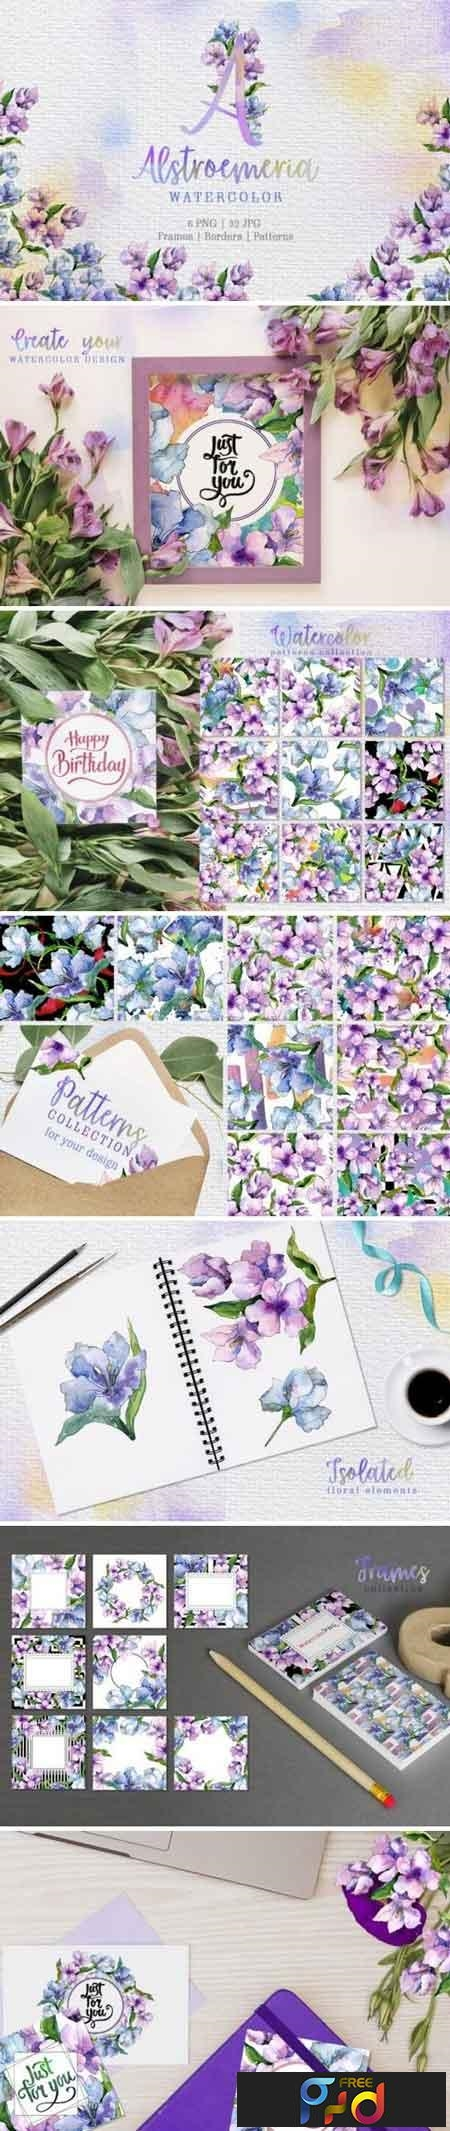 Alstroemeria Violet Watercolor png 3426119 1